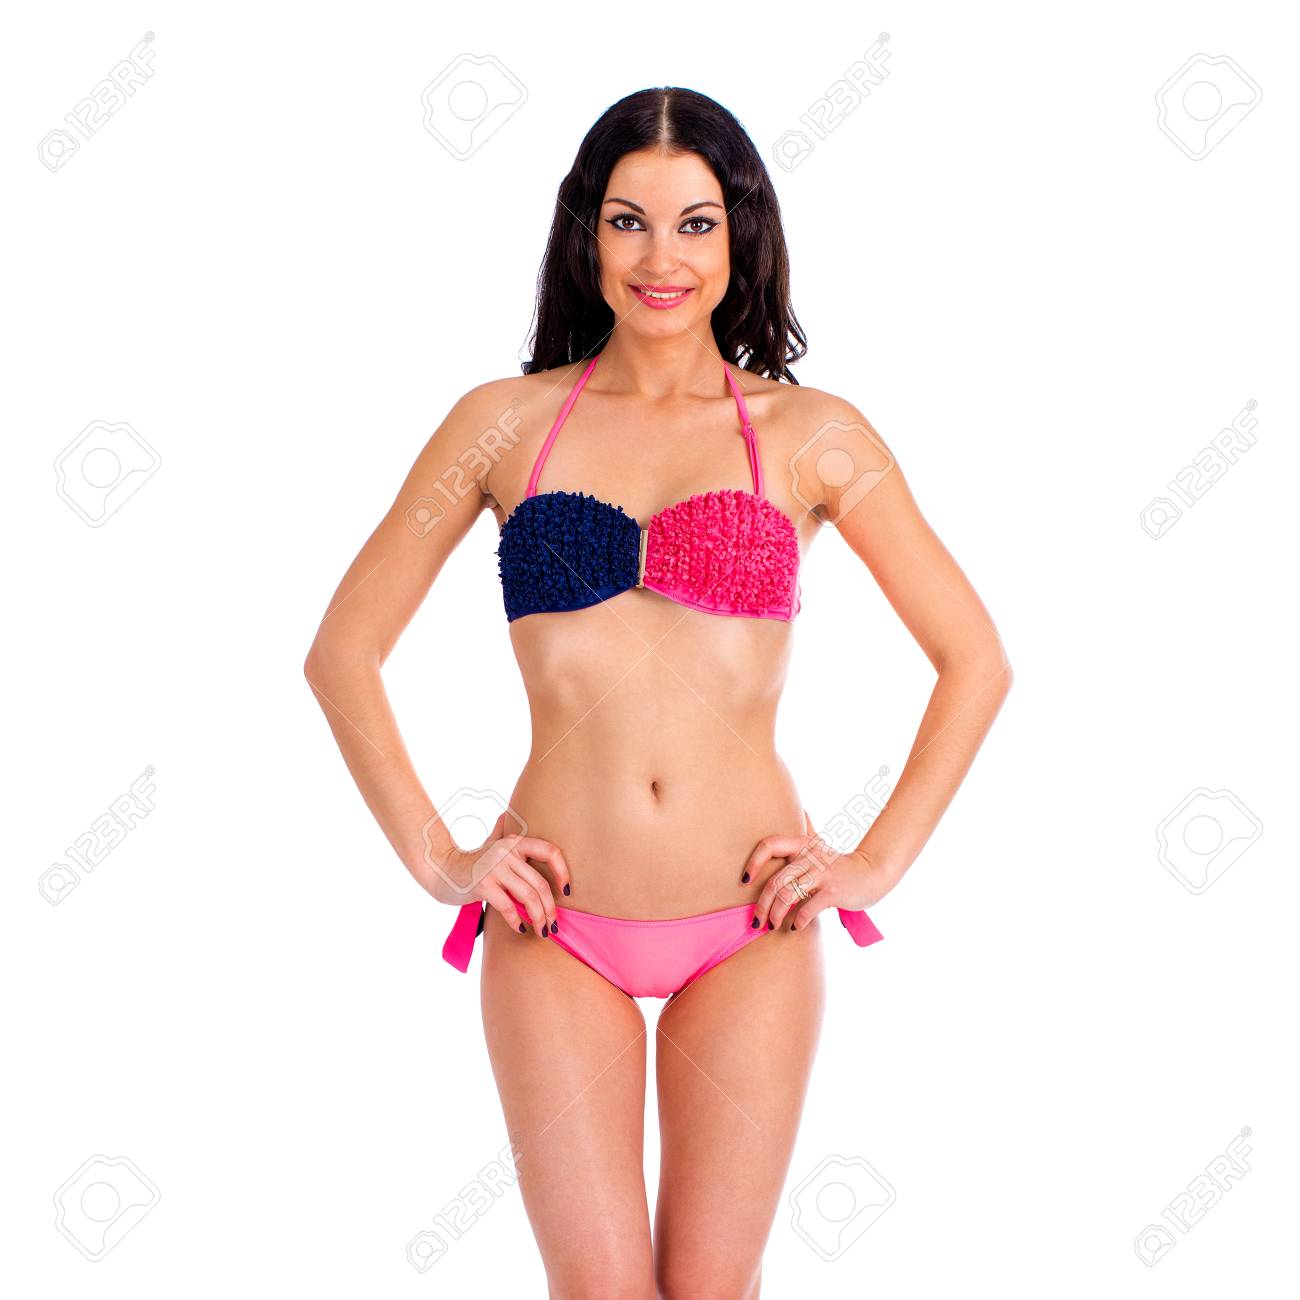 e5319177cec Beautiful young brunette woman in pink and blue bikini standing isolated on white  background Stock Photo